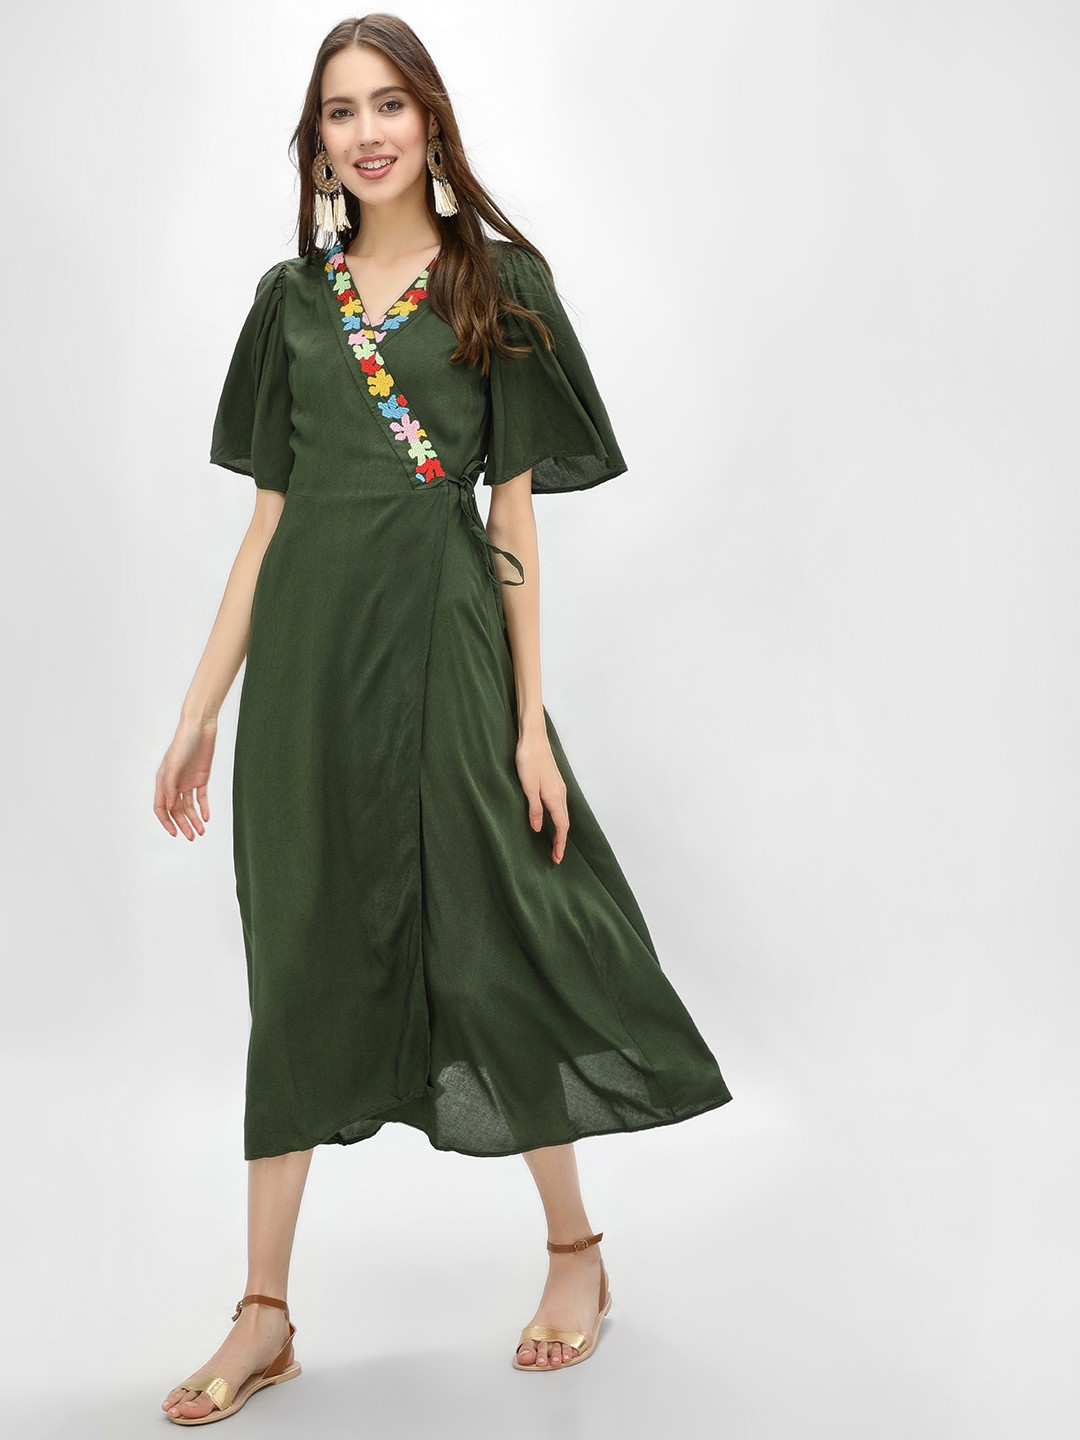 Kisscoast Olive Embroidered Wrap Front Midi Dress 1